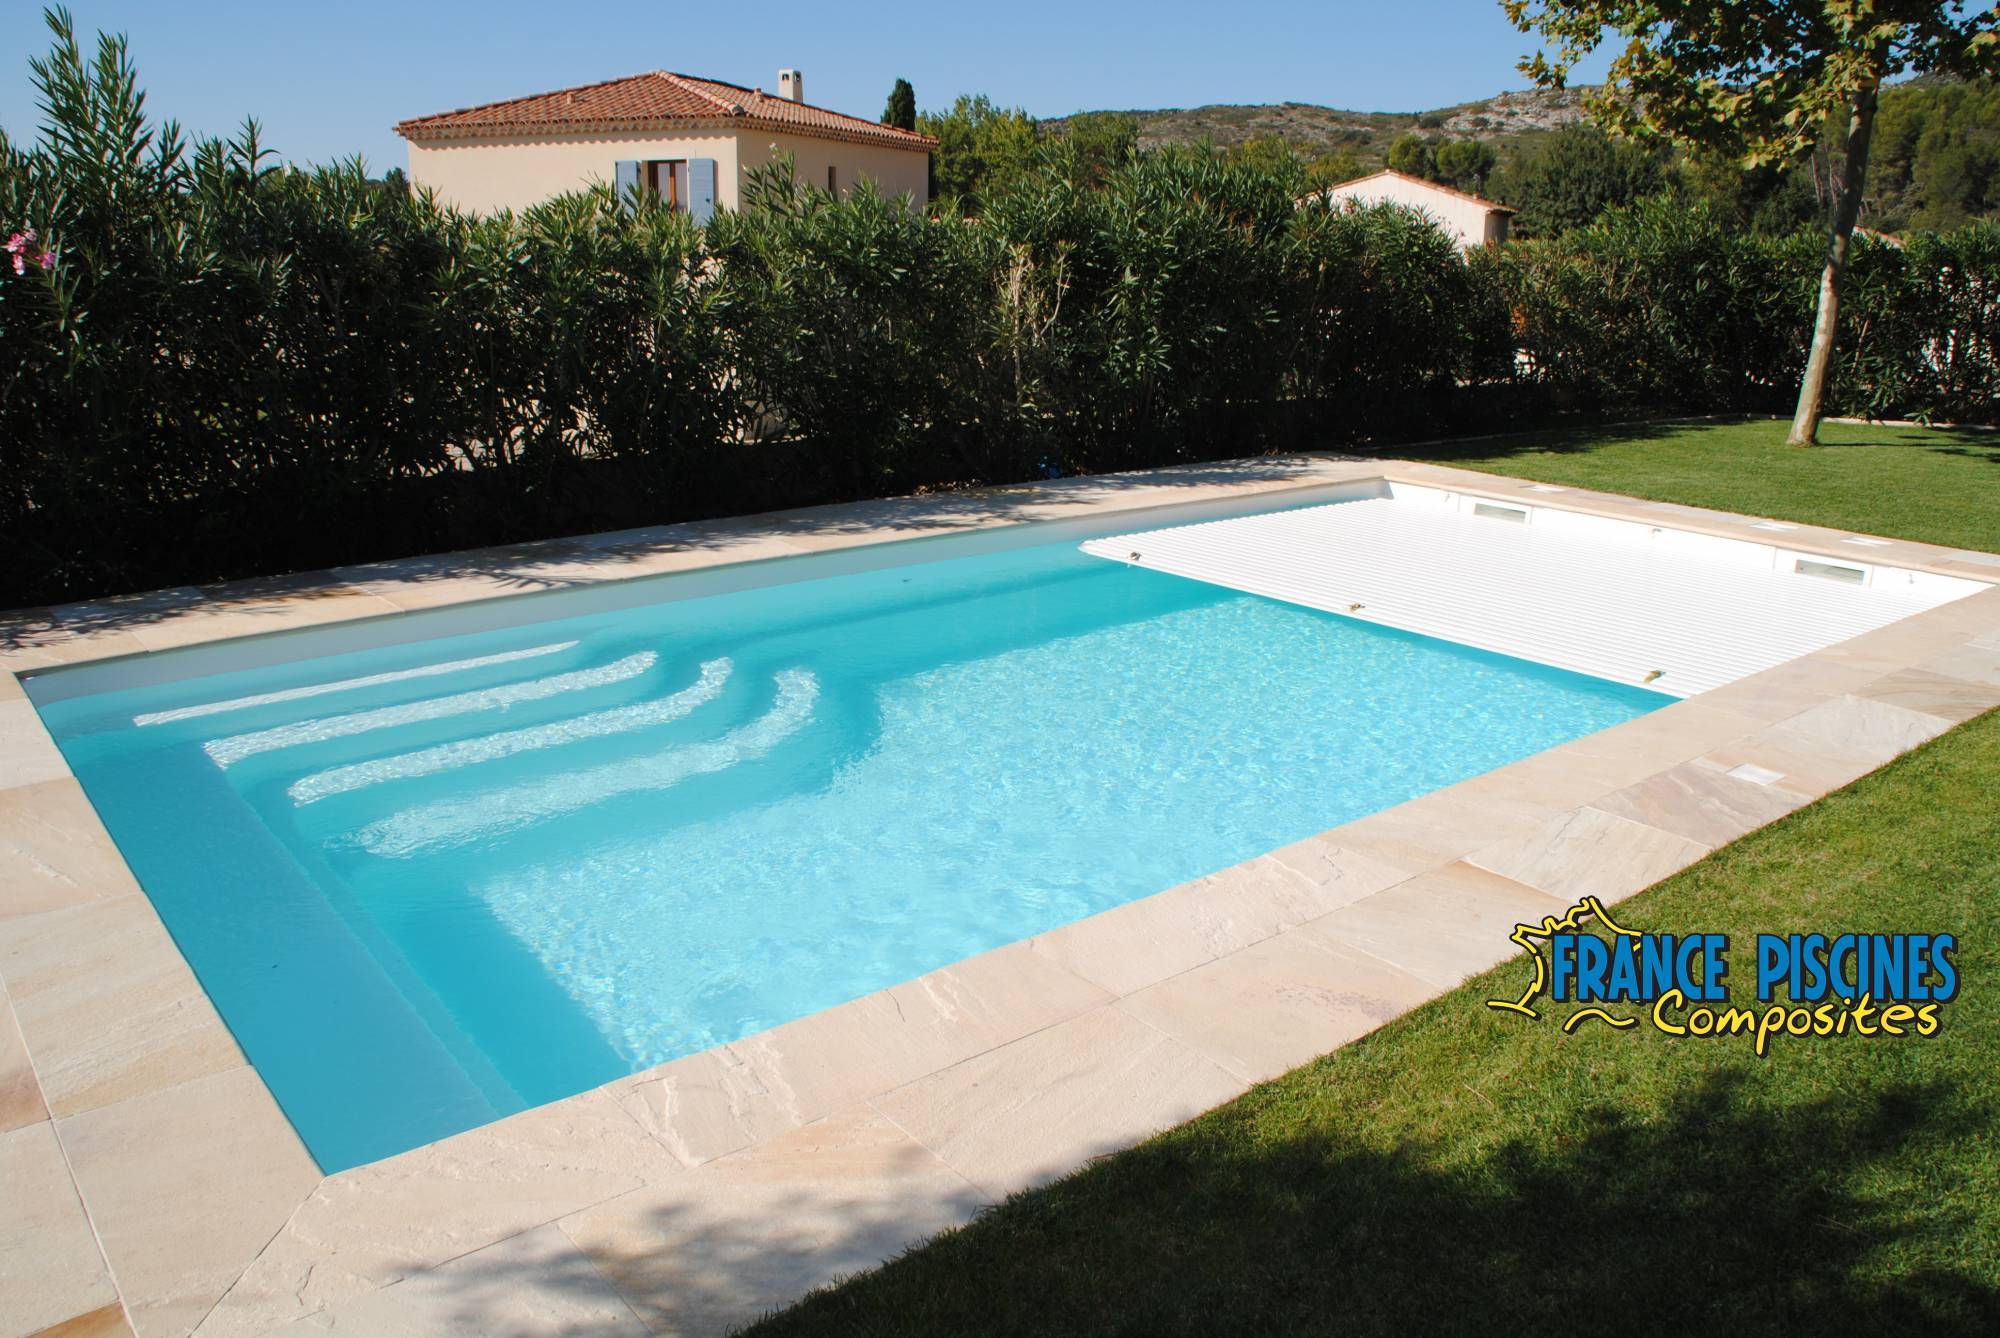 Vente et pose de piscine enterr e coque polyester for Piscine provence polyester